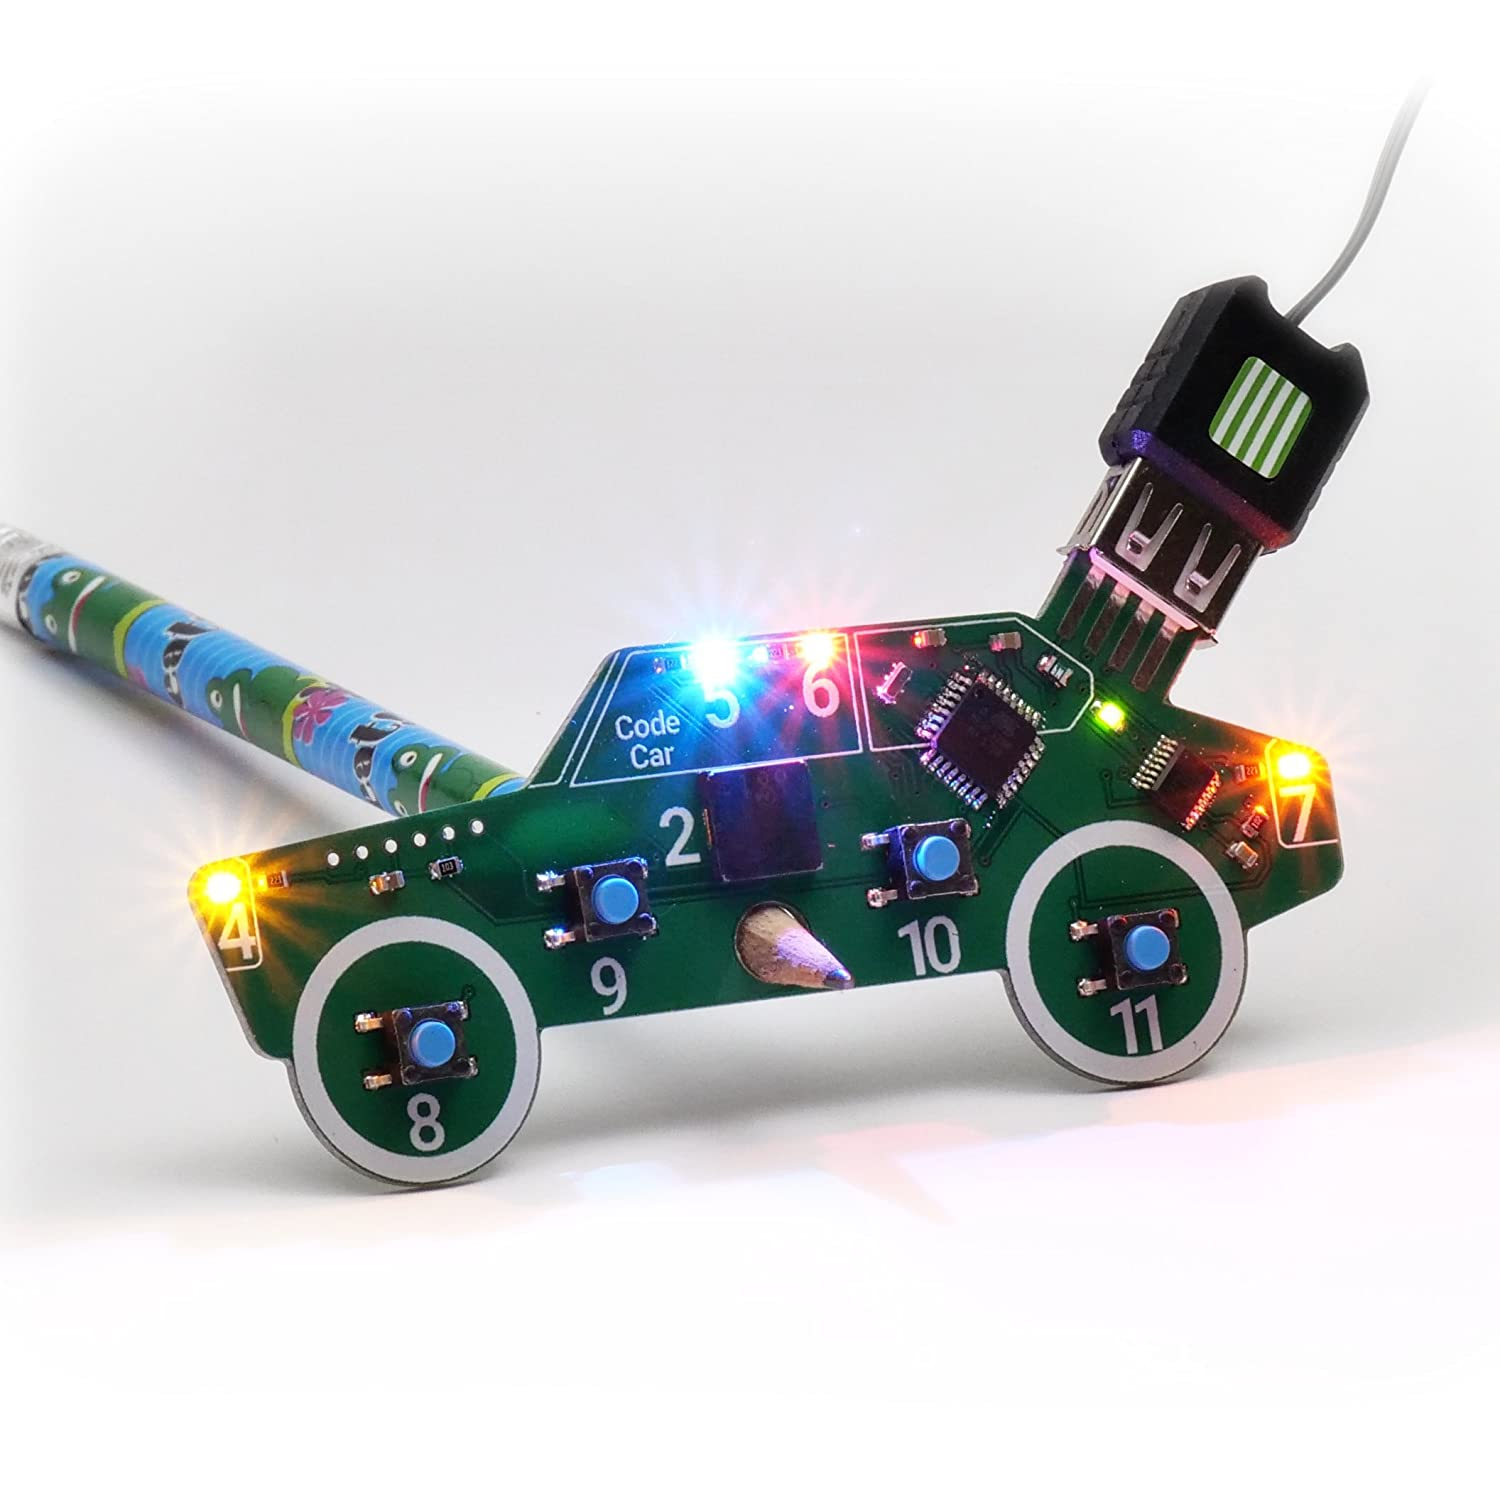 Amazon Code Car Toy Kids Age 8 12 Learn puter Coding the